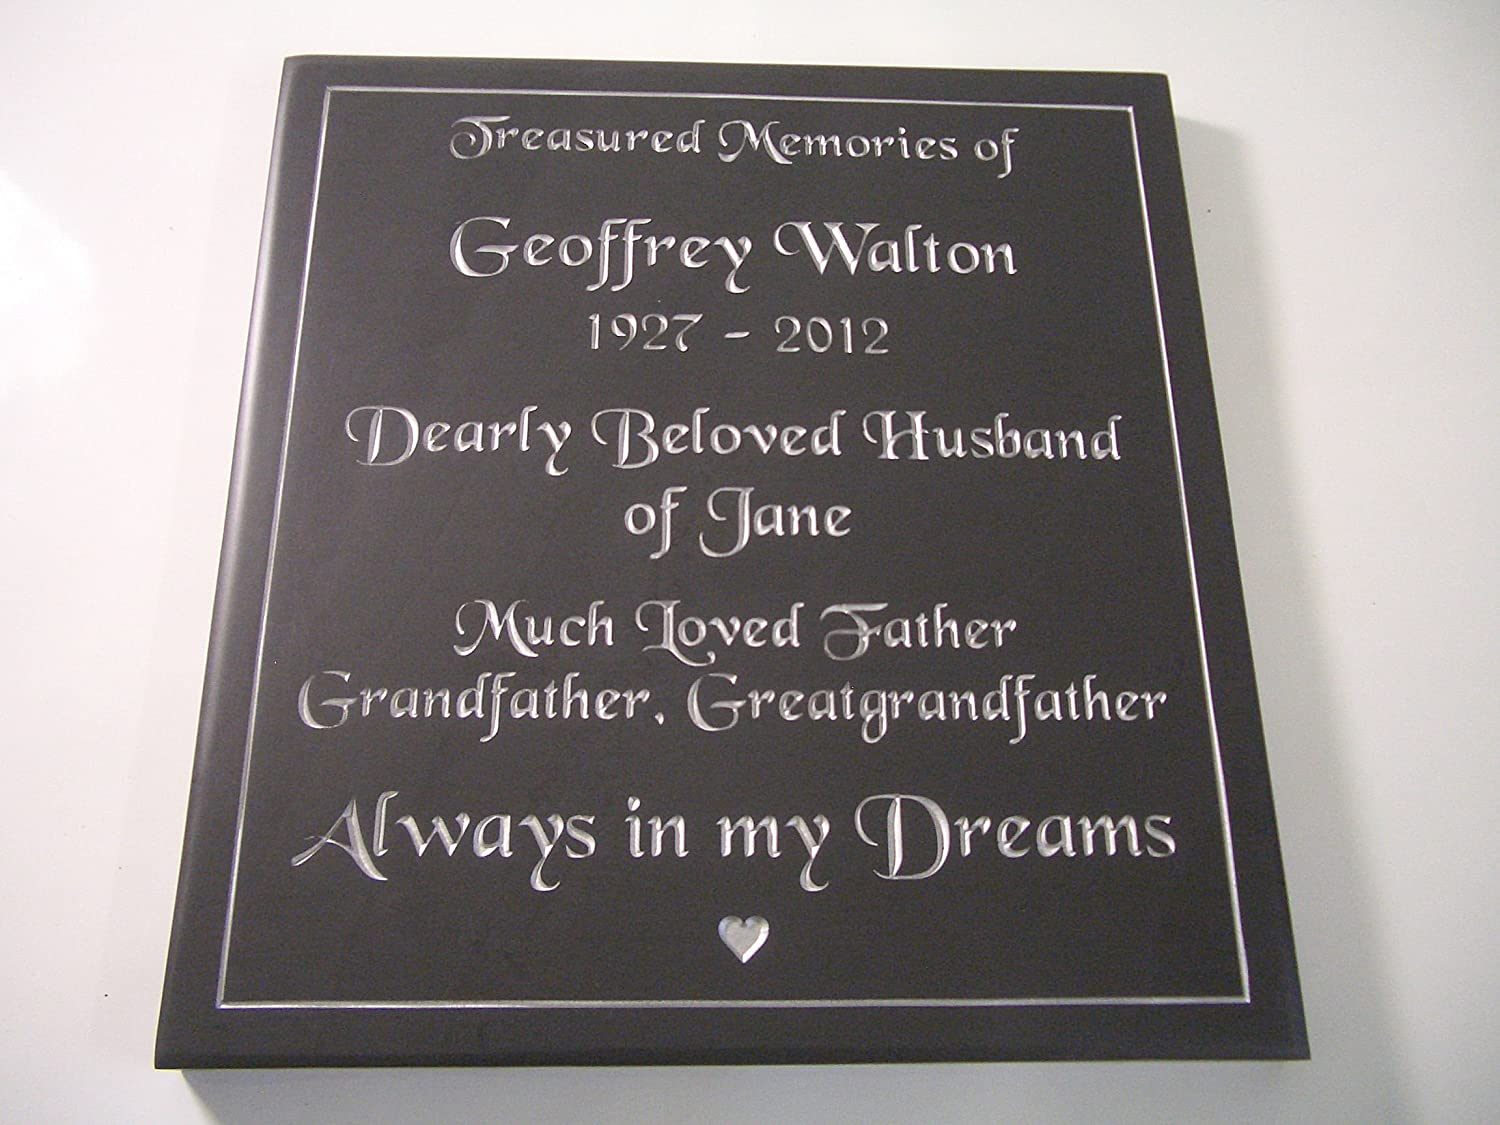 9c993e01710d Slate Memorial Plaques for People ideal for all Gardens (200mm x 150mm):  Amazon.co.uk: Garden & Outdoors